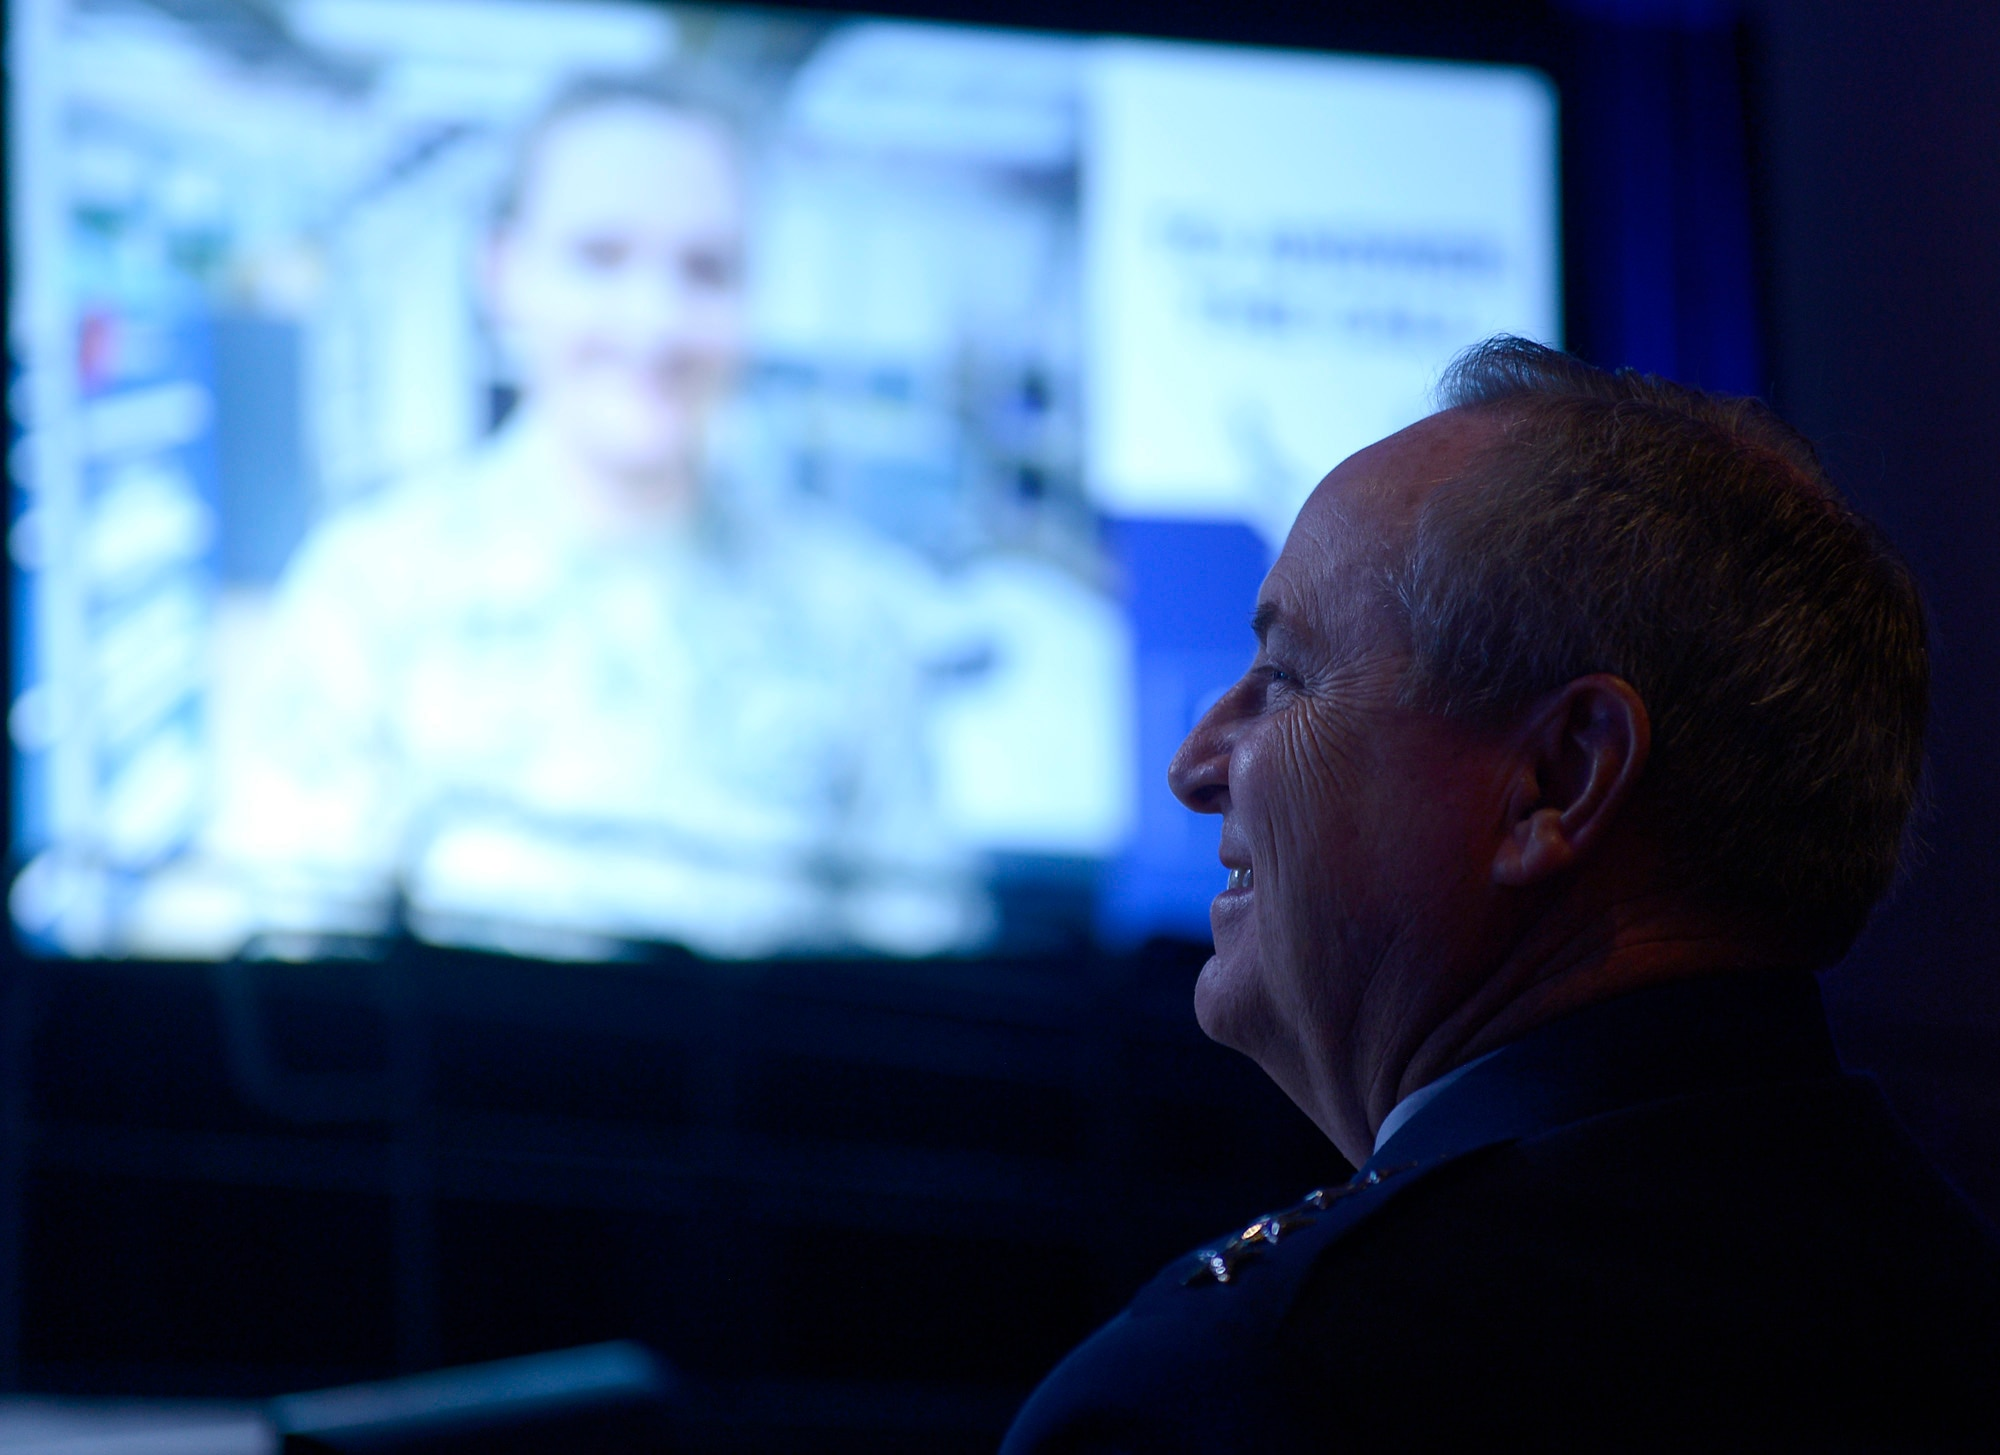 Air Force Chief of Staff Gen. Mark A. Welsh III listens as Chief Master Sgt. of the Air Force James A. Cody gives his enlisted perspective during the Air Force Association's Air Warfare Symposium in Orlando, Fla., Feb. 25, 2016.  (U.S. Air Force photo/Scott M. Ash)